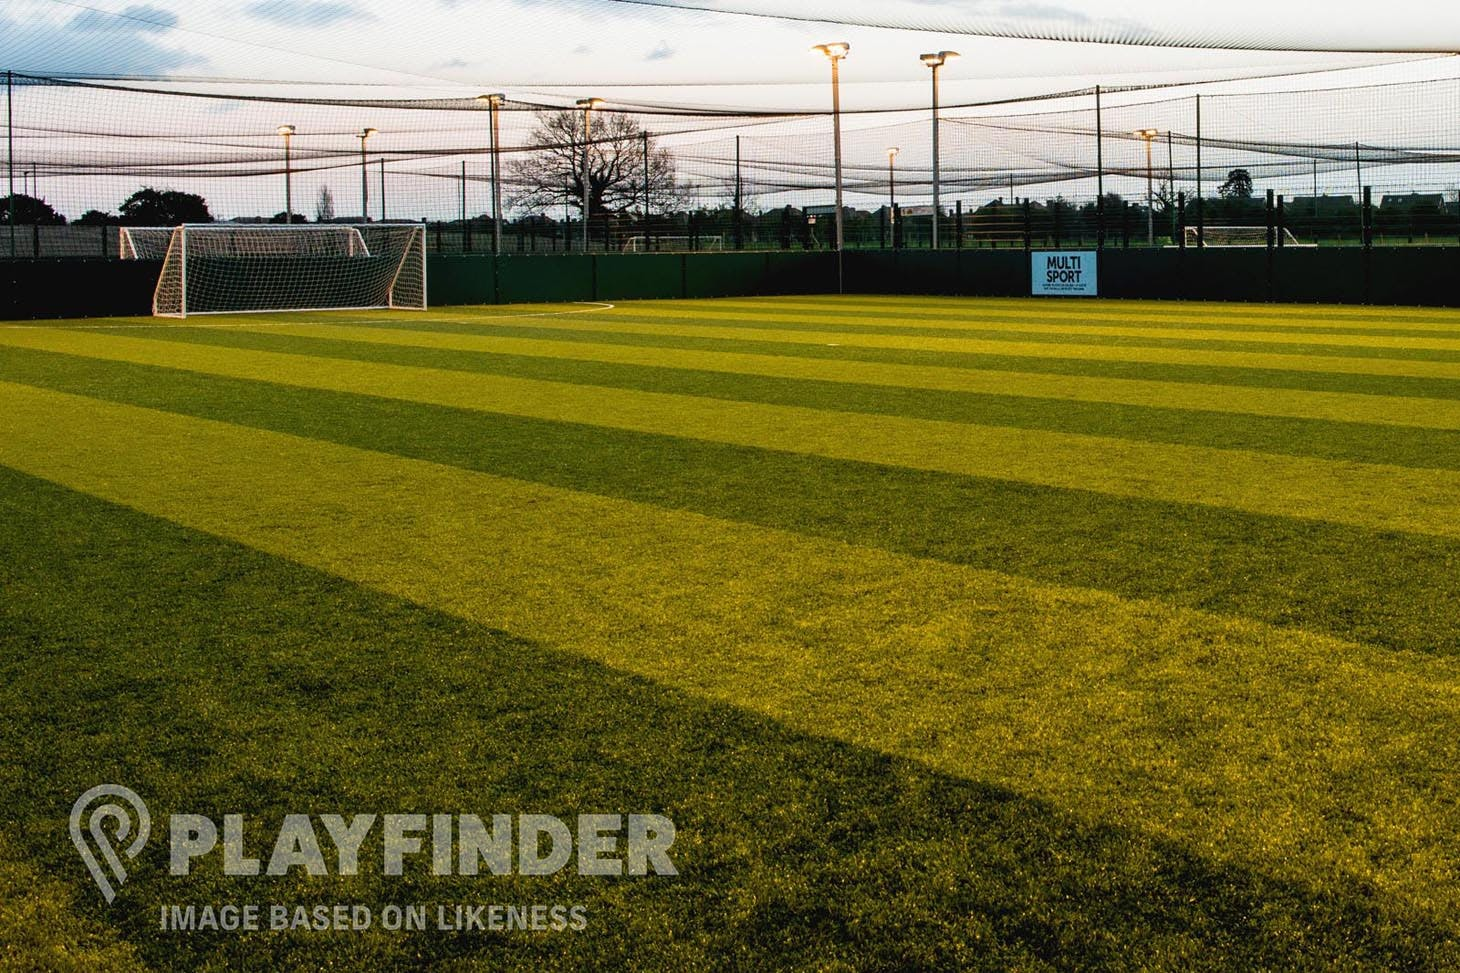 Goals Leeds 8 a side | 3G Astroturf football pitch